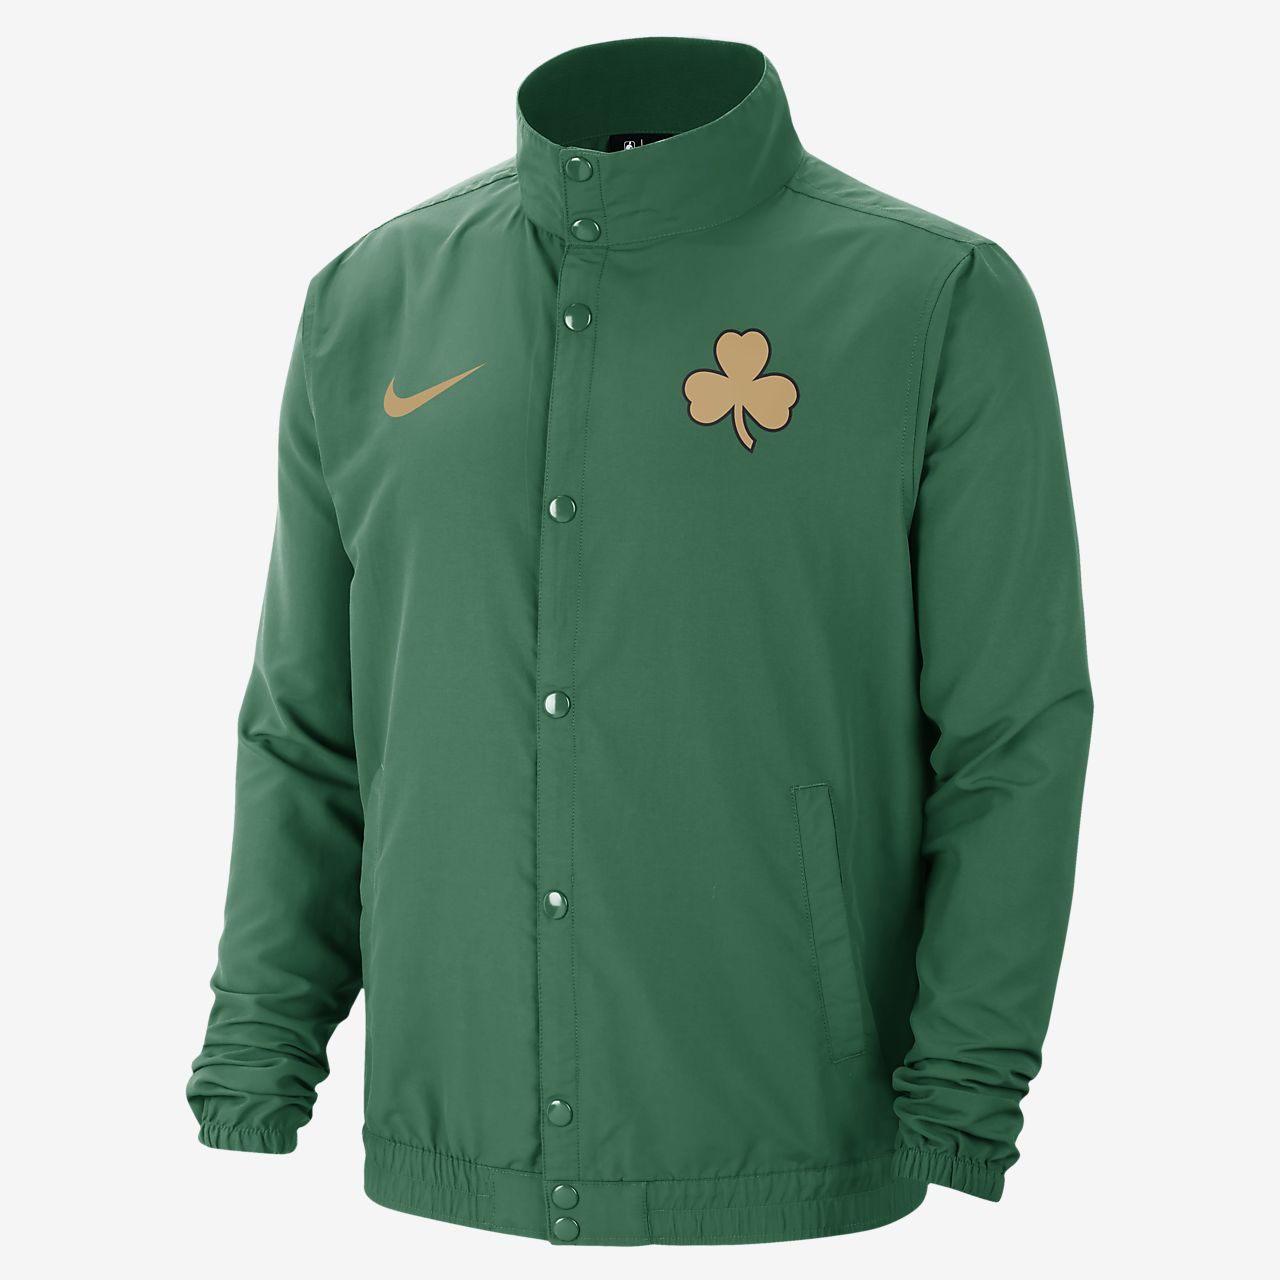 Women Shoes A | Celtics jacket, Boston celtics, Jackets